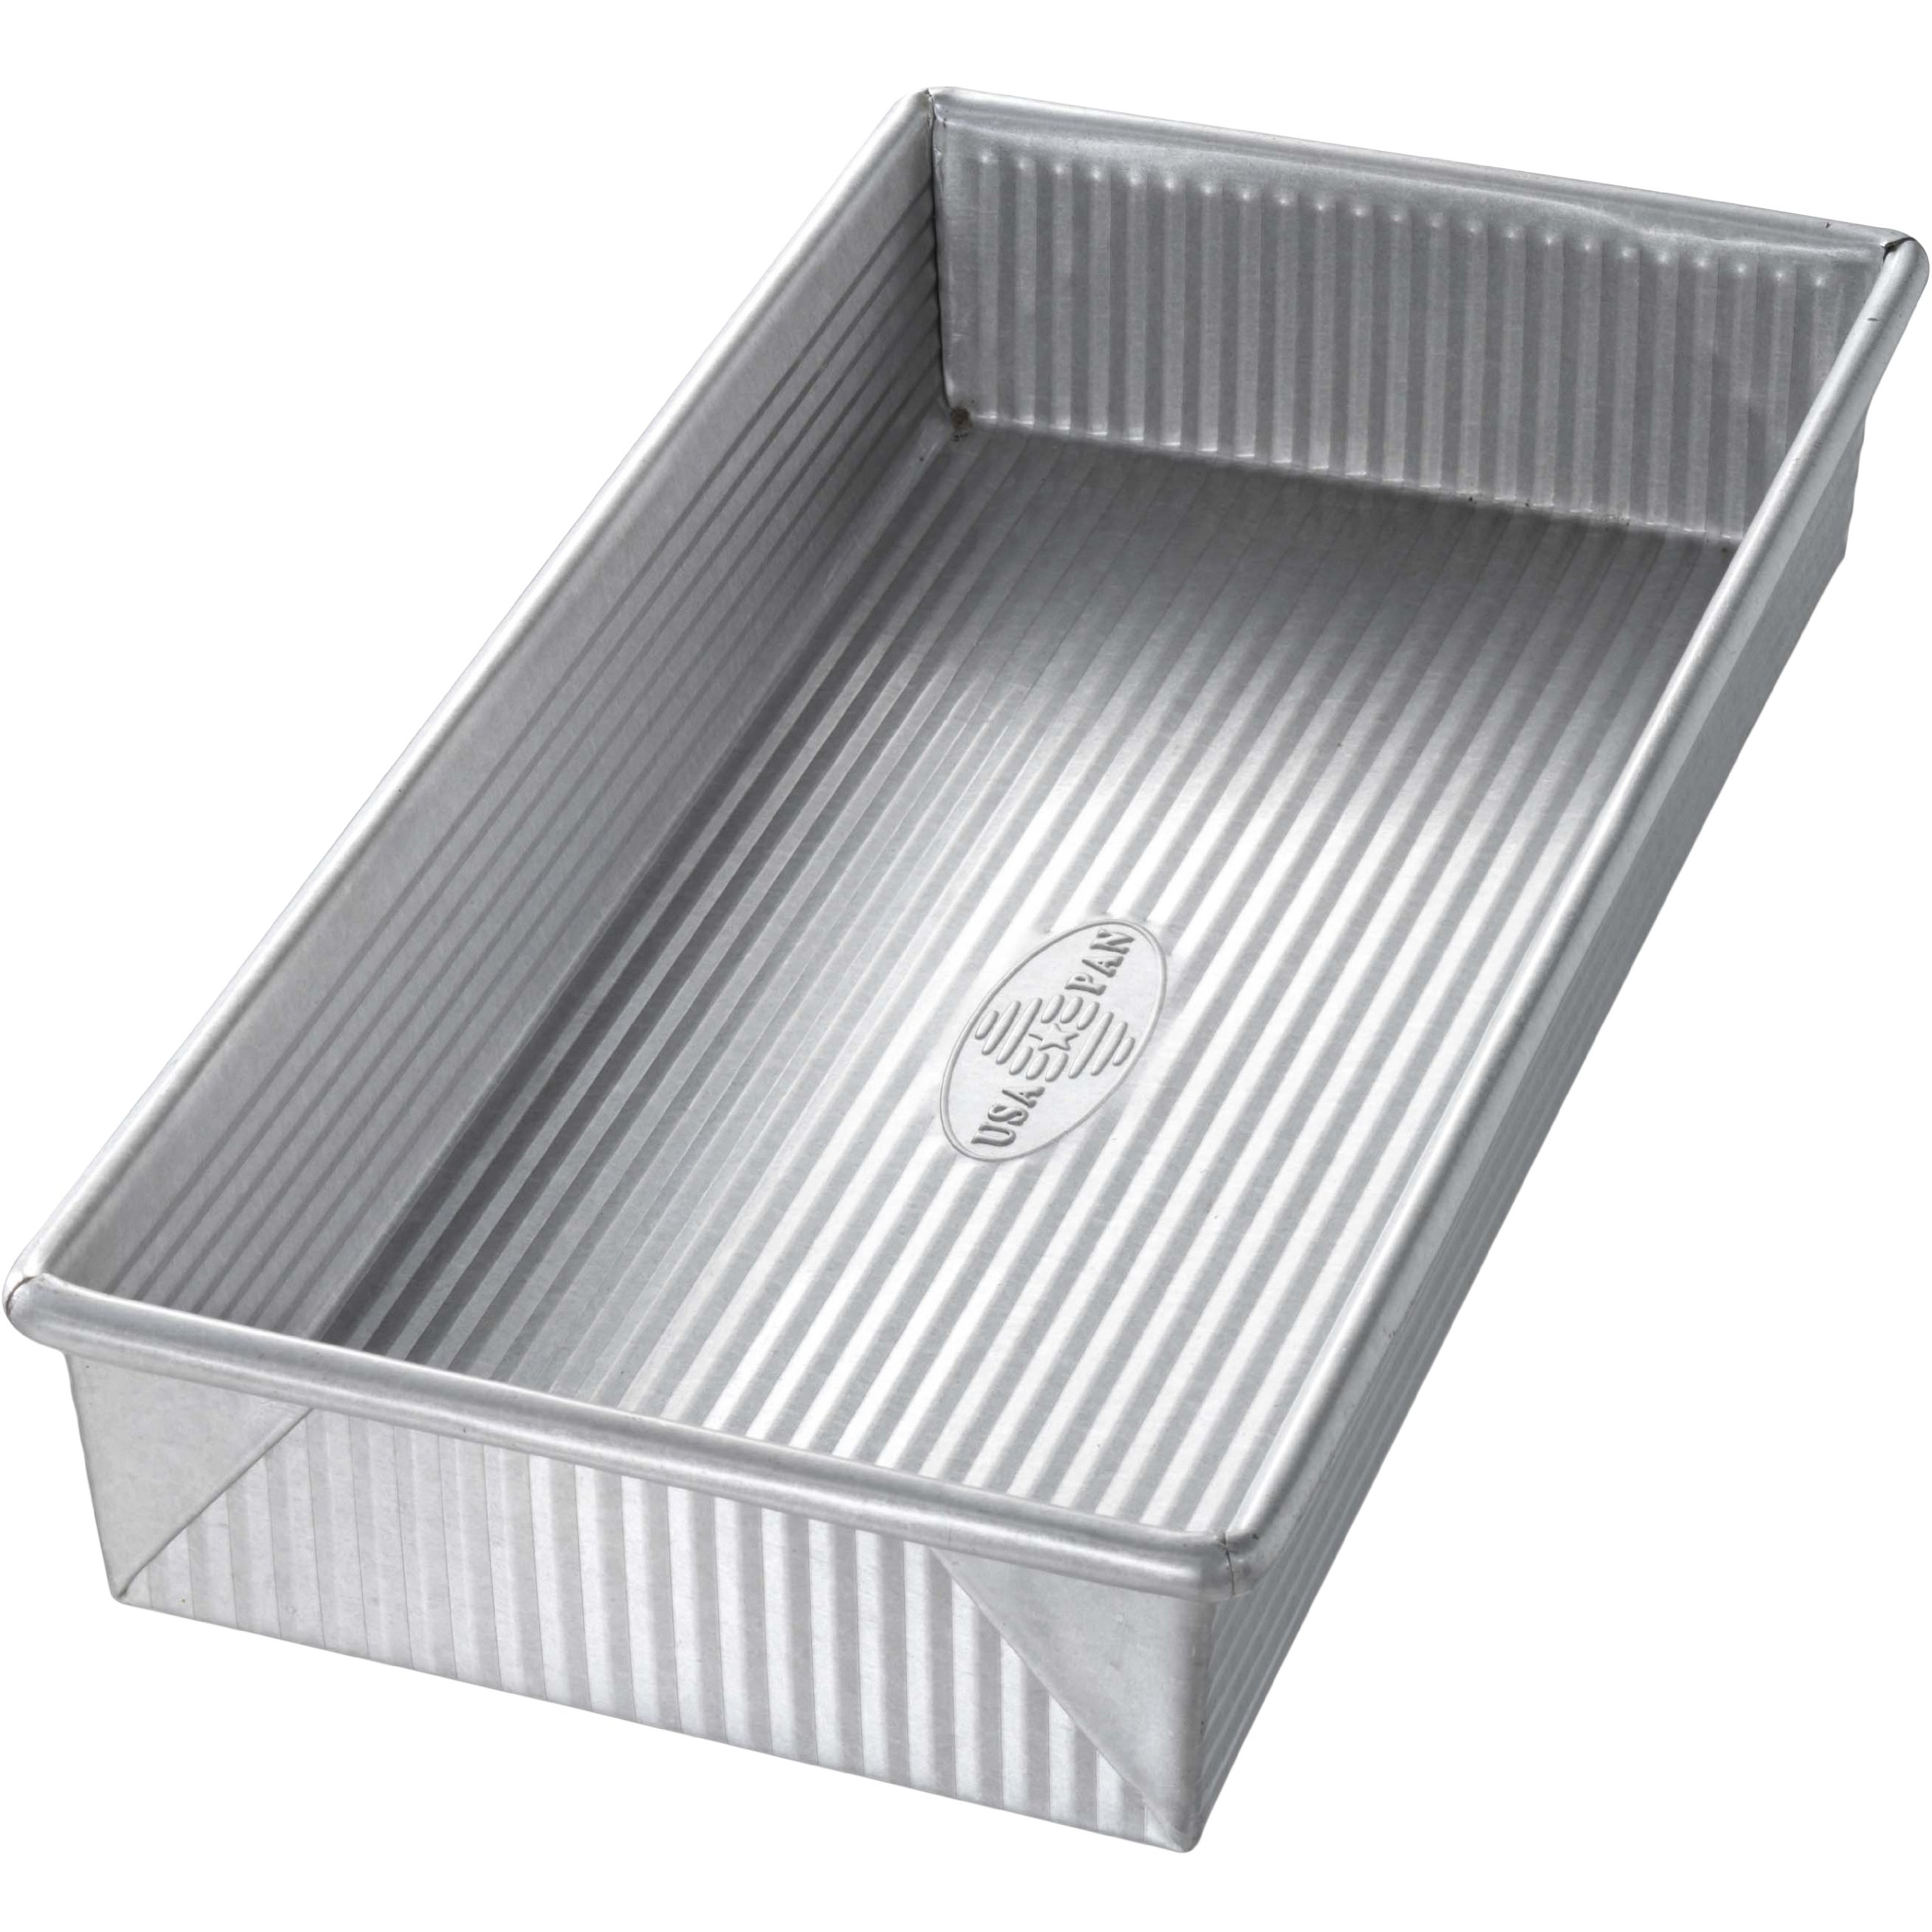 USA Pan Bakeware Aluminized Steel Biscotti Pan by USA Pan